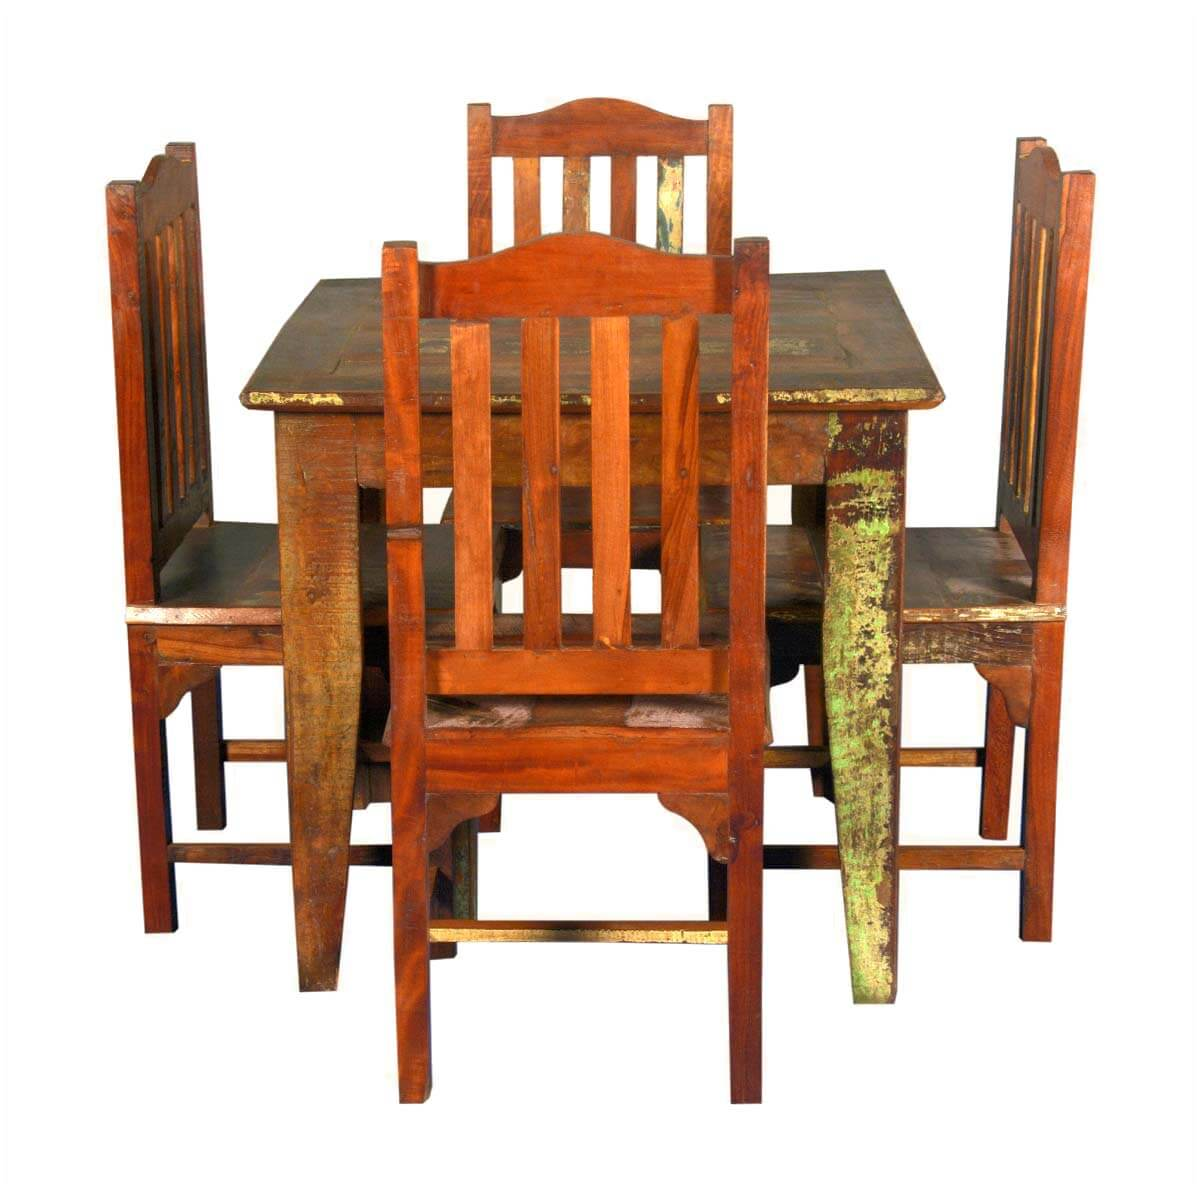 Norwalk reclaimed wood square dining table with chairs set